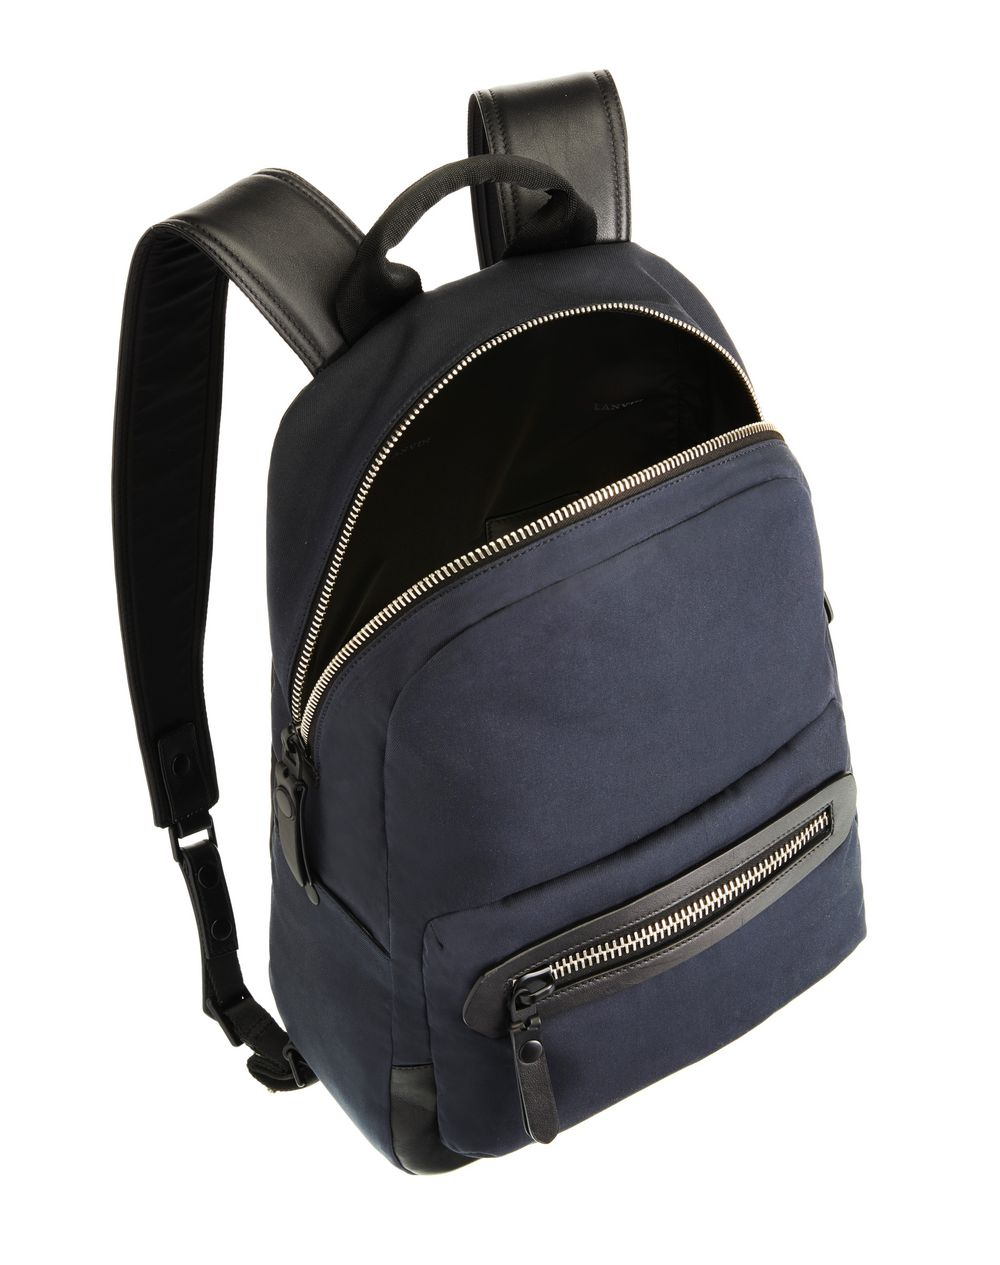 COTTON ZIP BACKPACK  - Lanvin